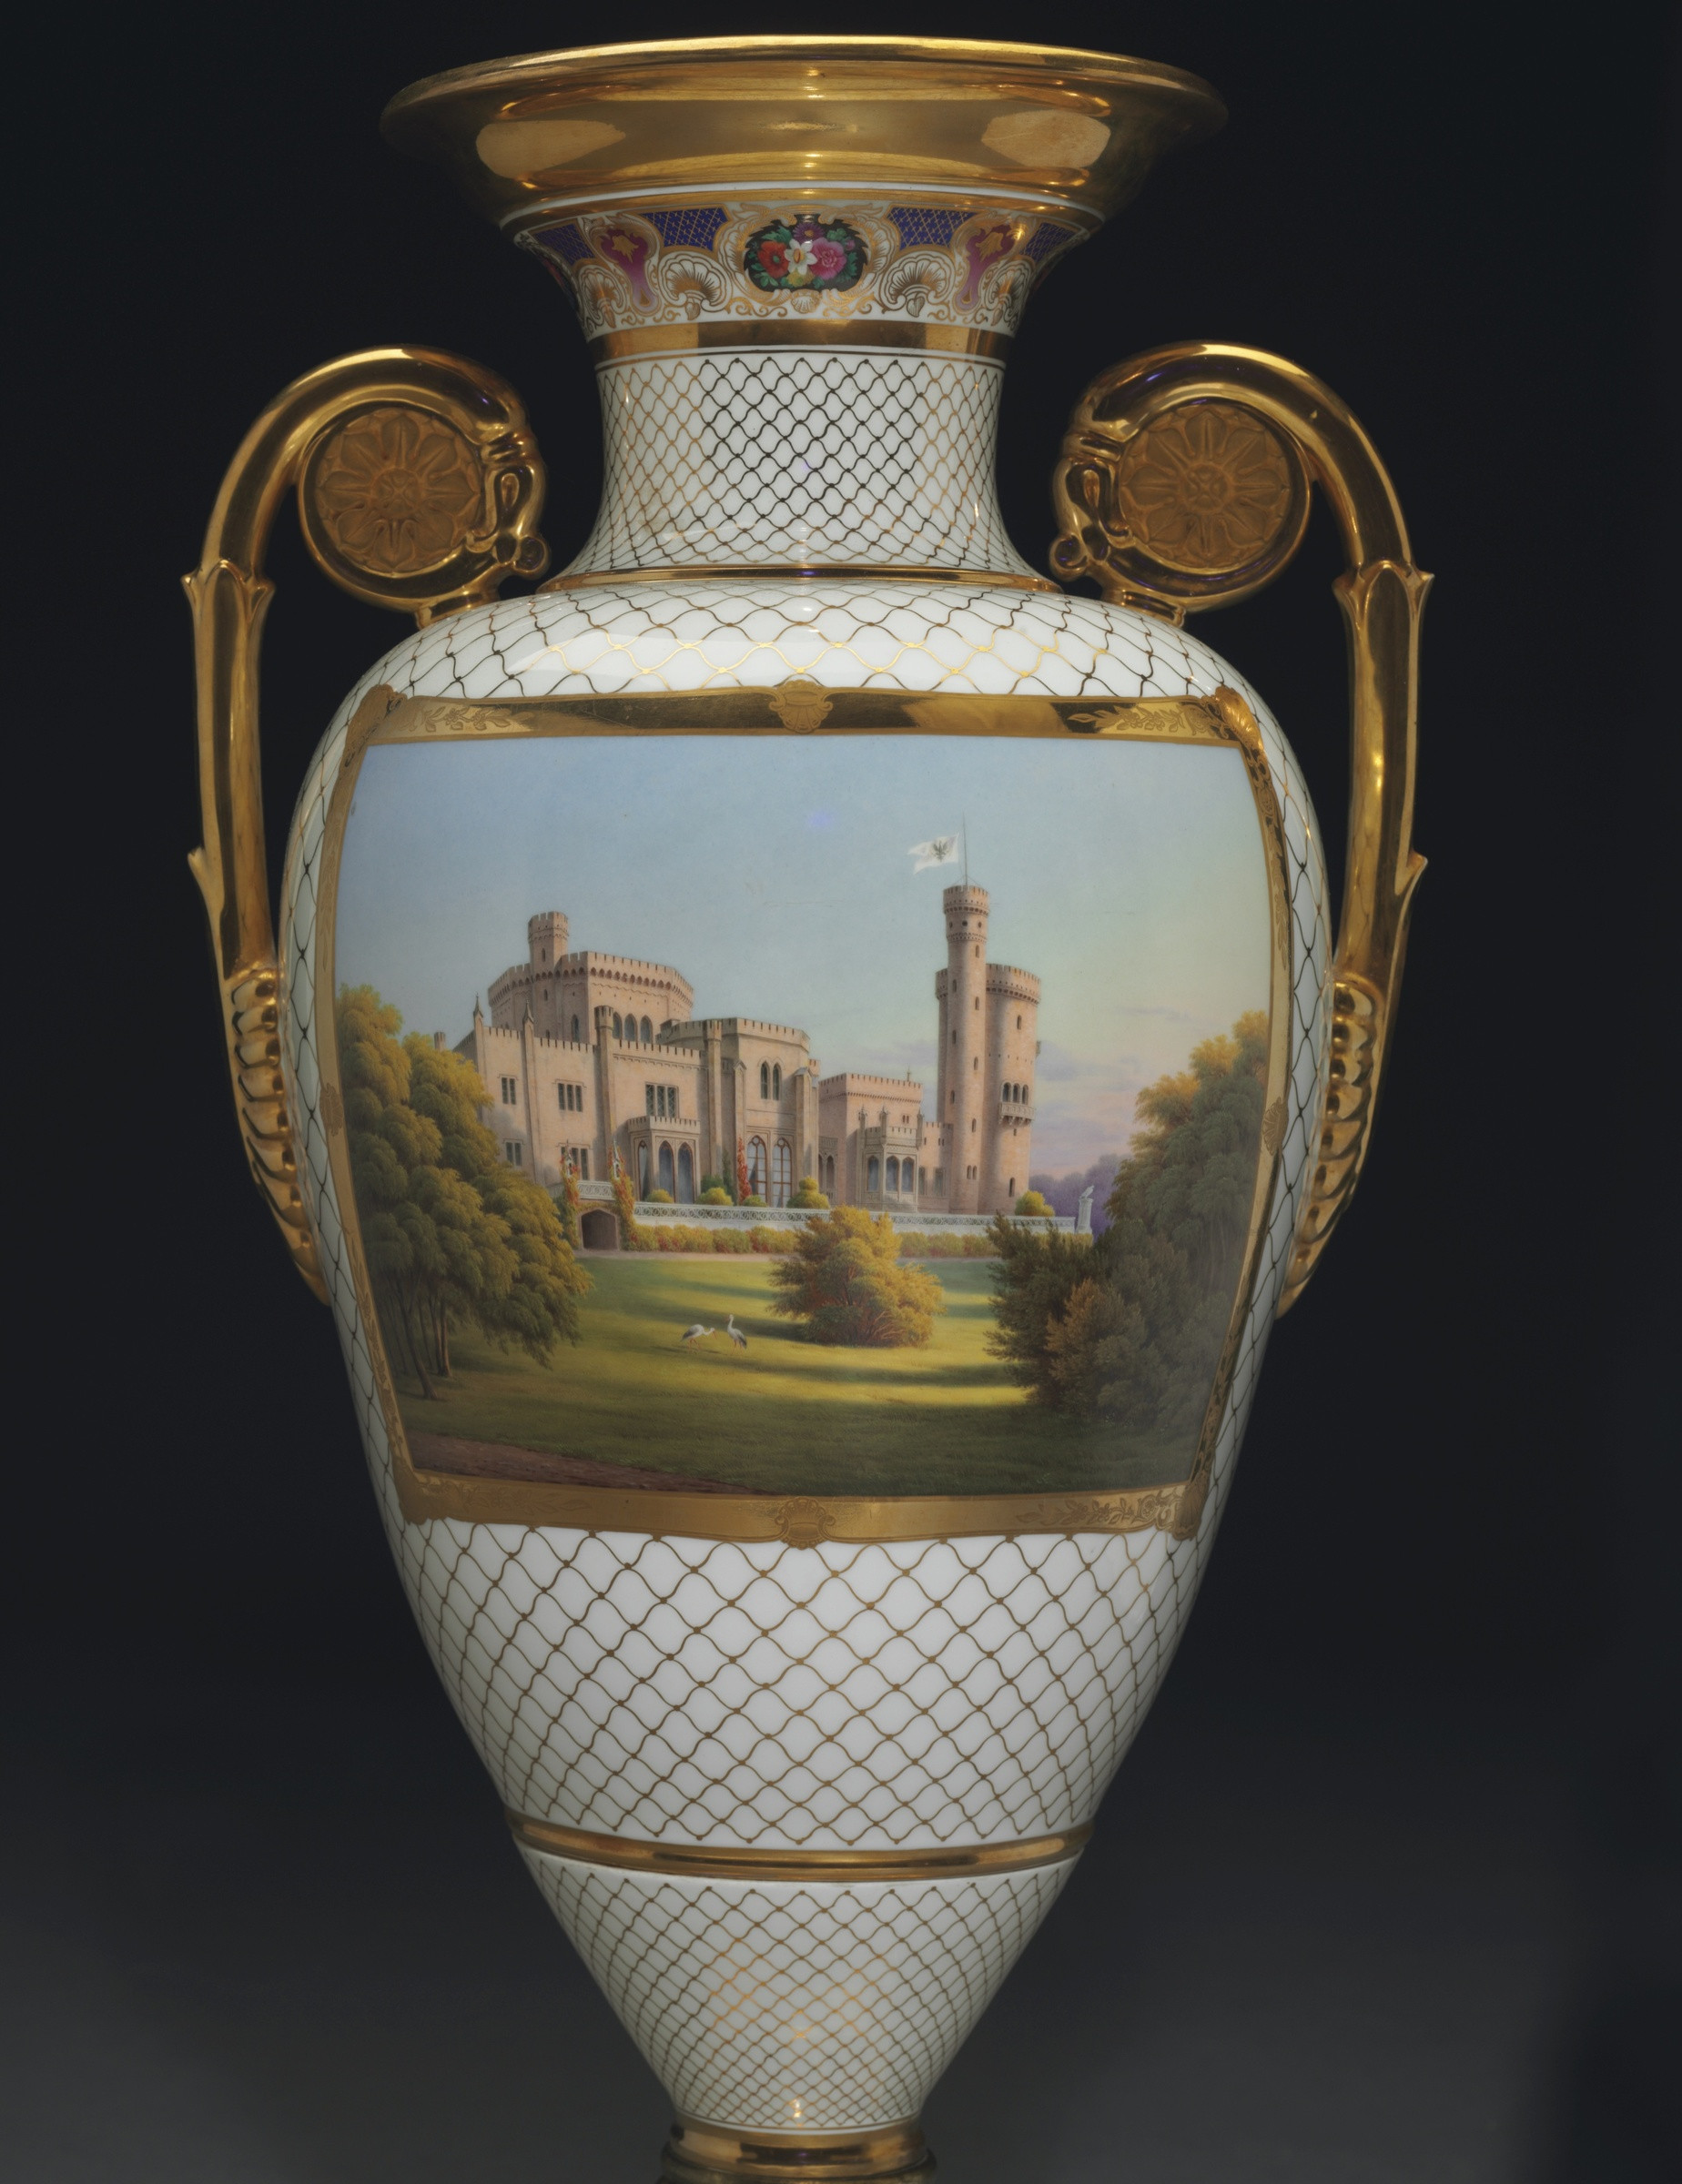 vase made in germany of k p m ka¶nigliche porzellan manufaktur berlin a highly important regarding a highly important classical armorial and topographical three piece vase garniture from the meiningen